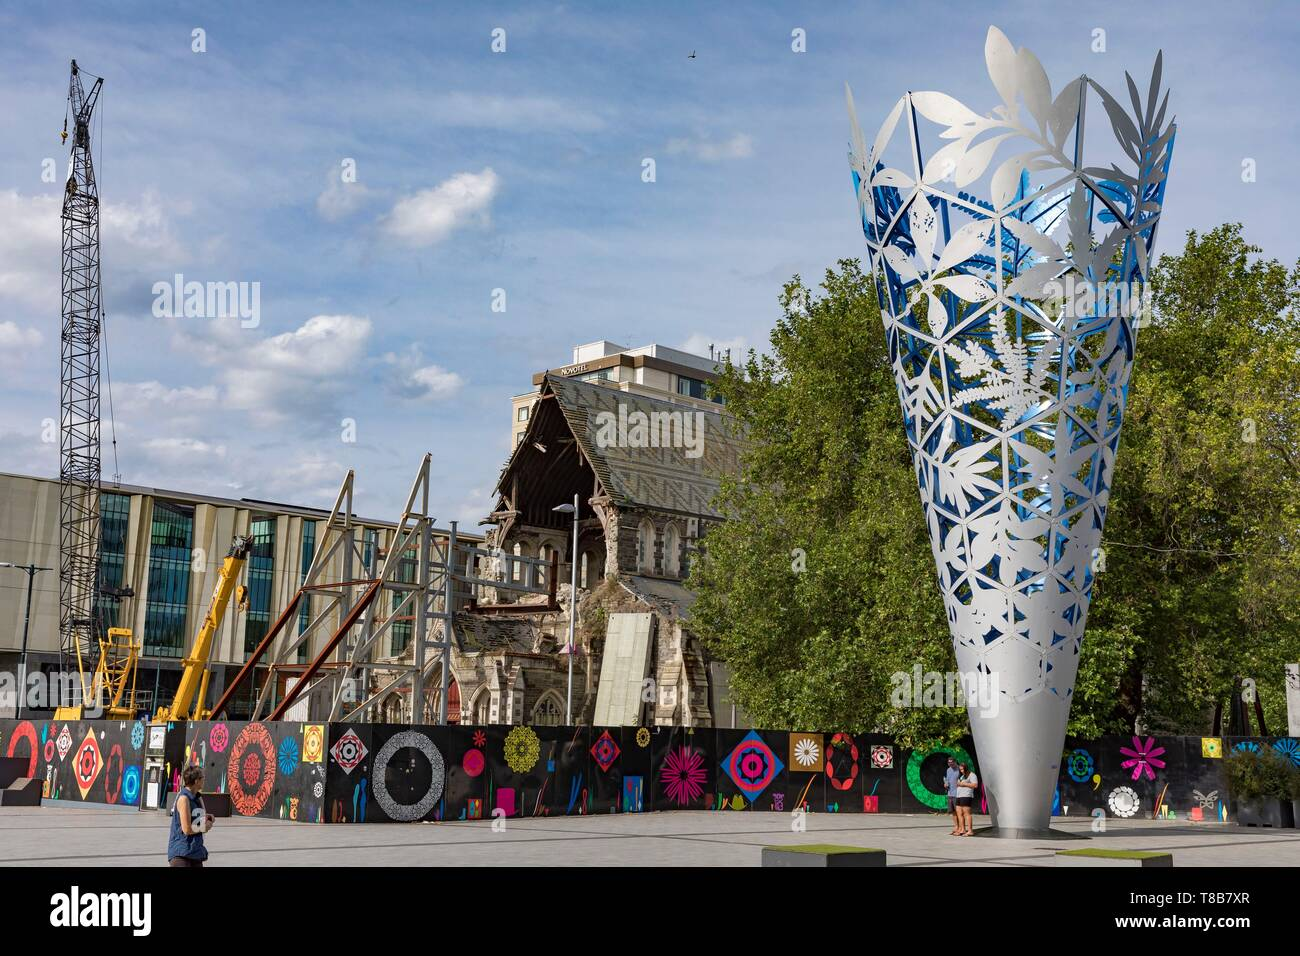 New Zealand, South Island, Canterbury Region, Christchurch, Cathedral Square, the Chalice, Neil Dawson sculpture, 2001, and the ruins of Christchurch cathedral - Stock Image